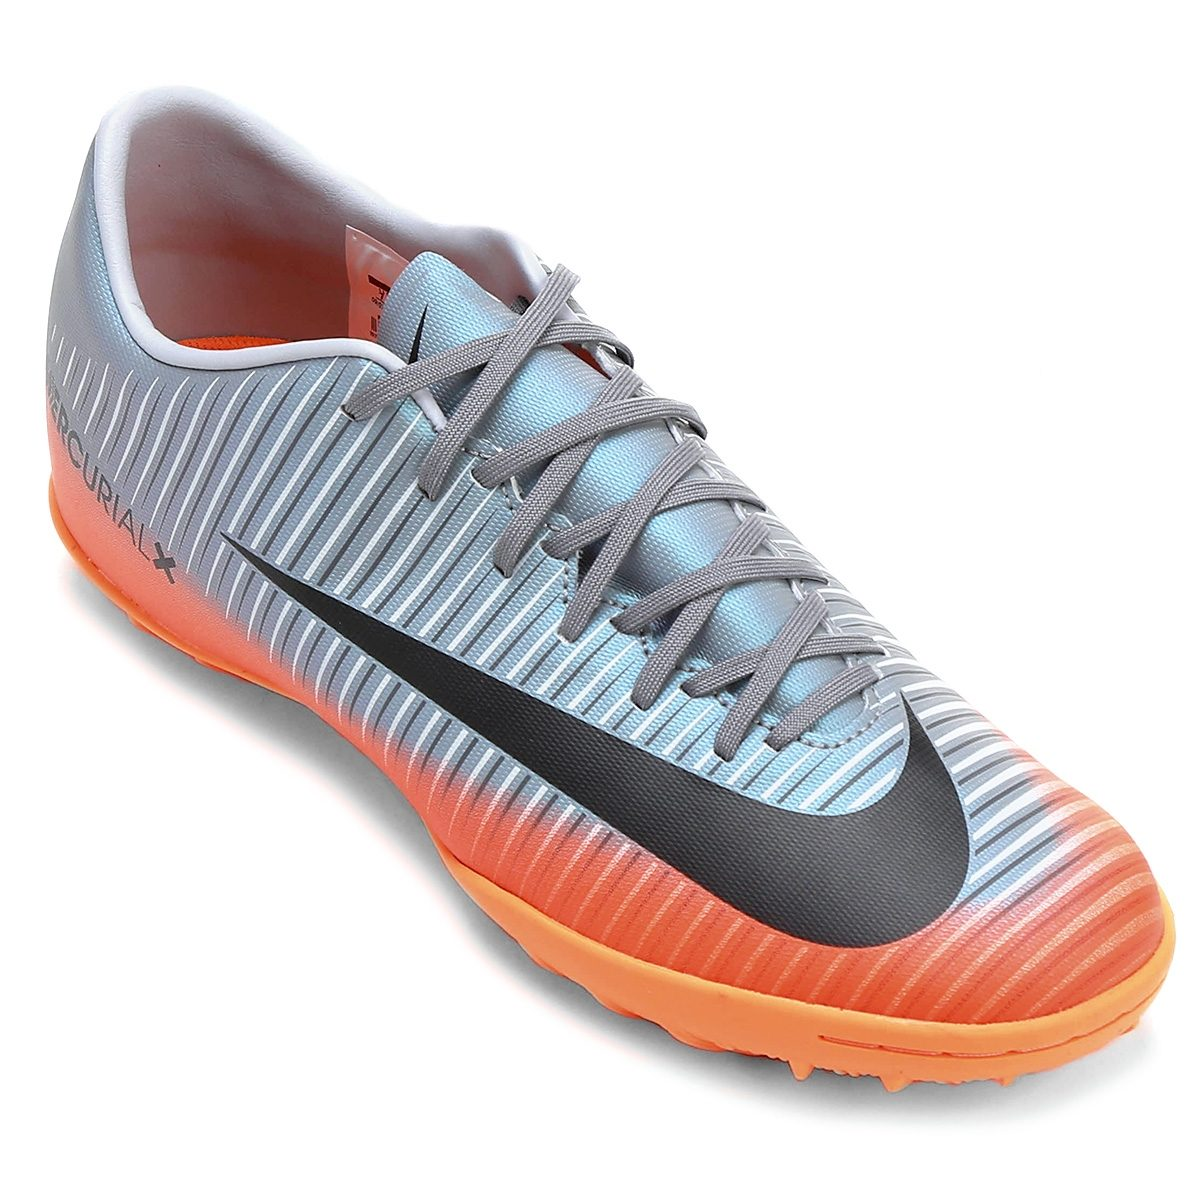 46474df4503 ... clearance chuteira nike mercurial victory 6 cr7 tf society original nf. carregando  zoom. bd677